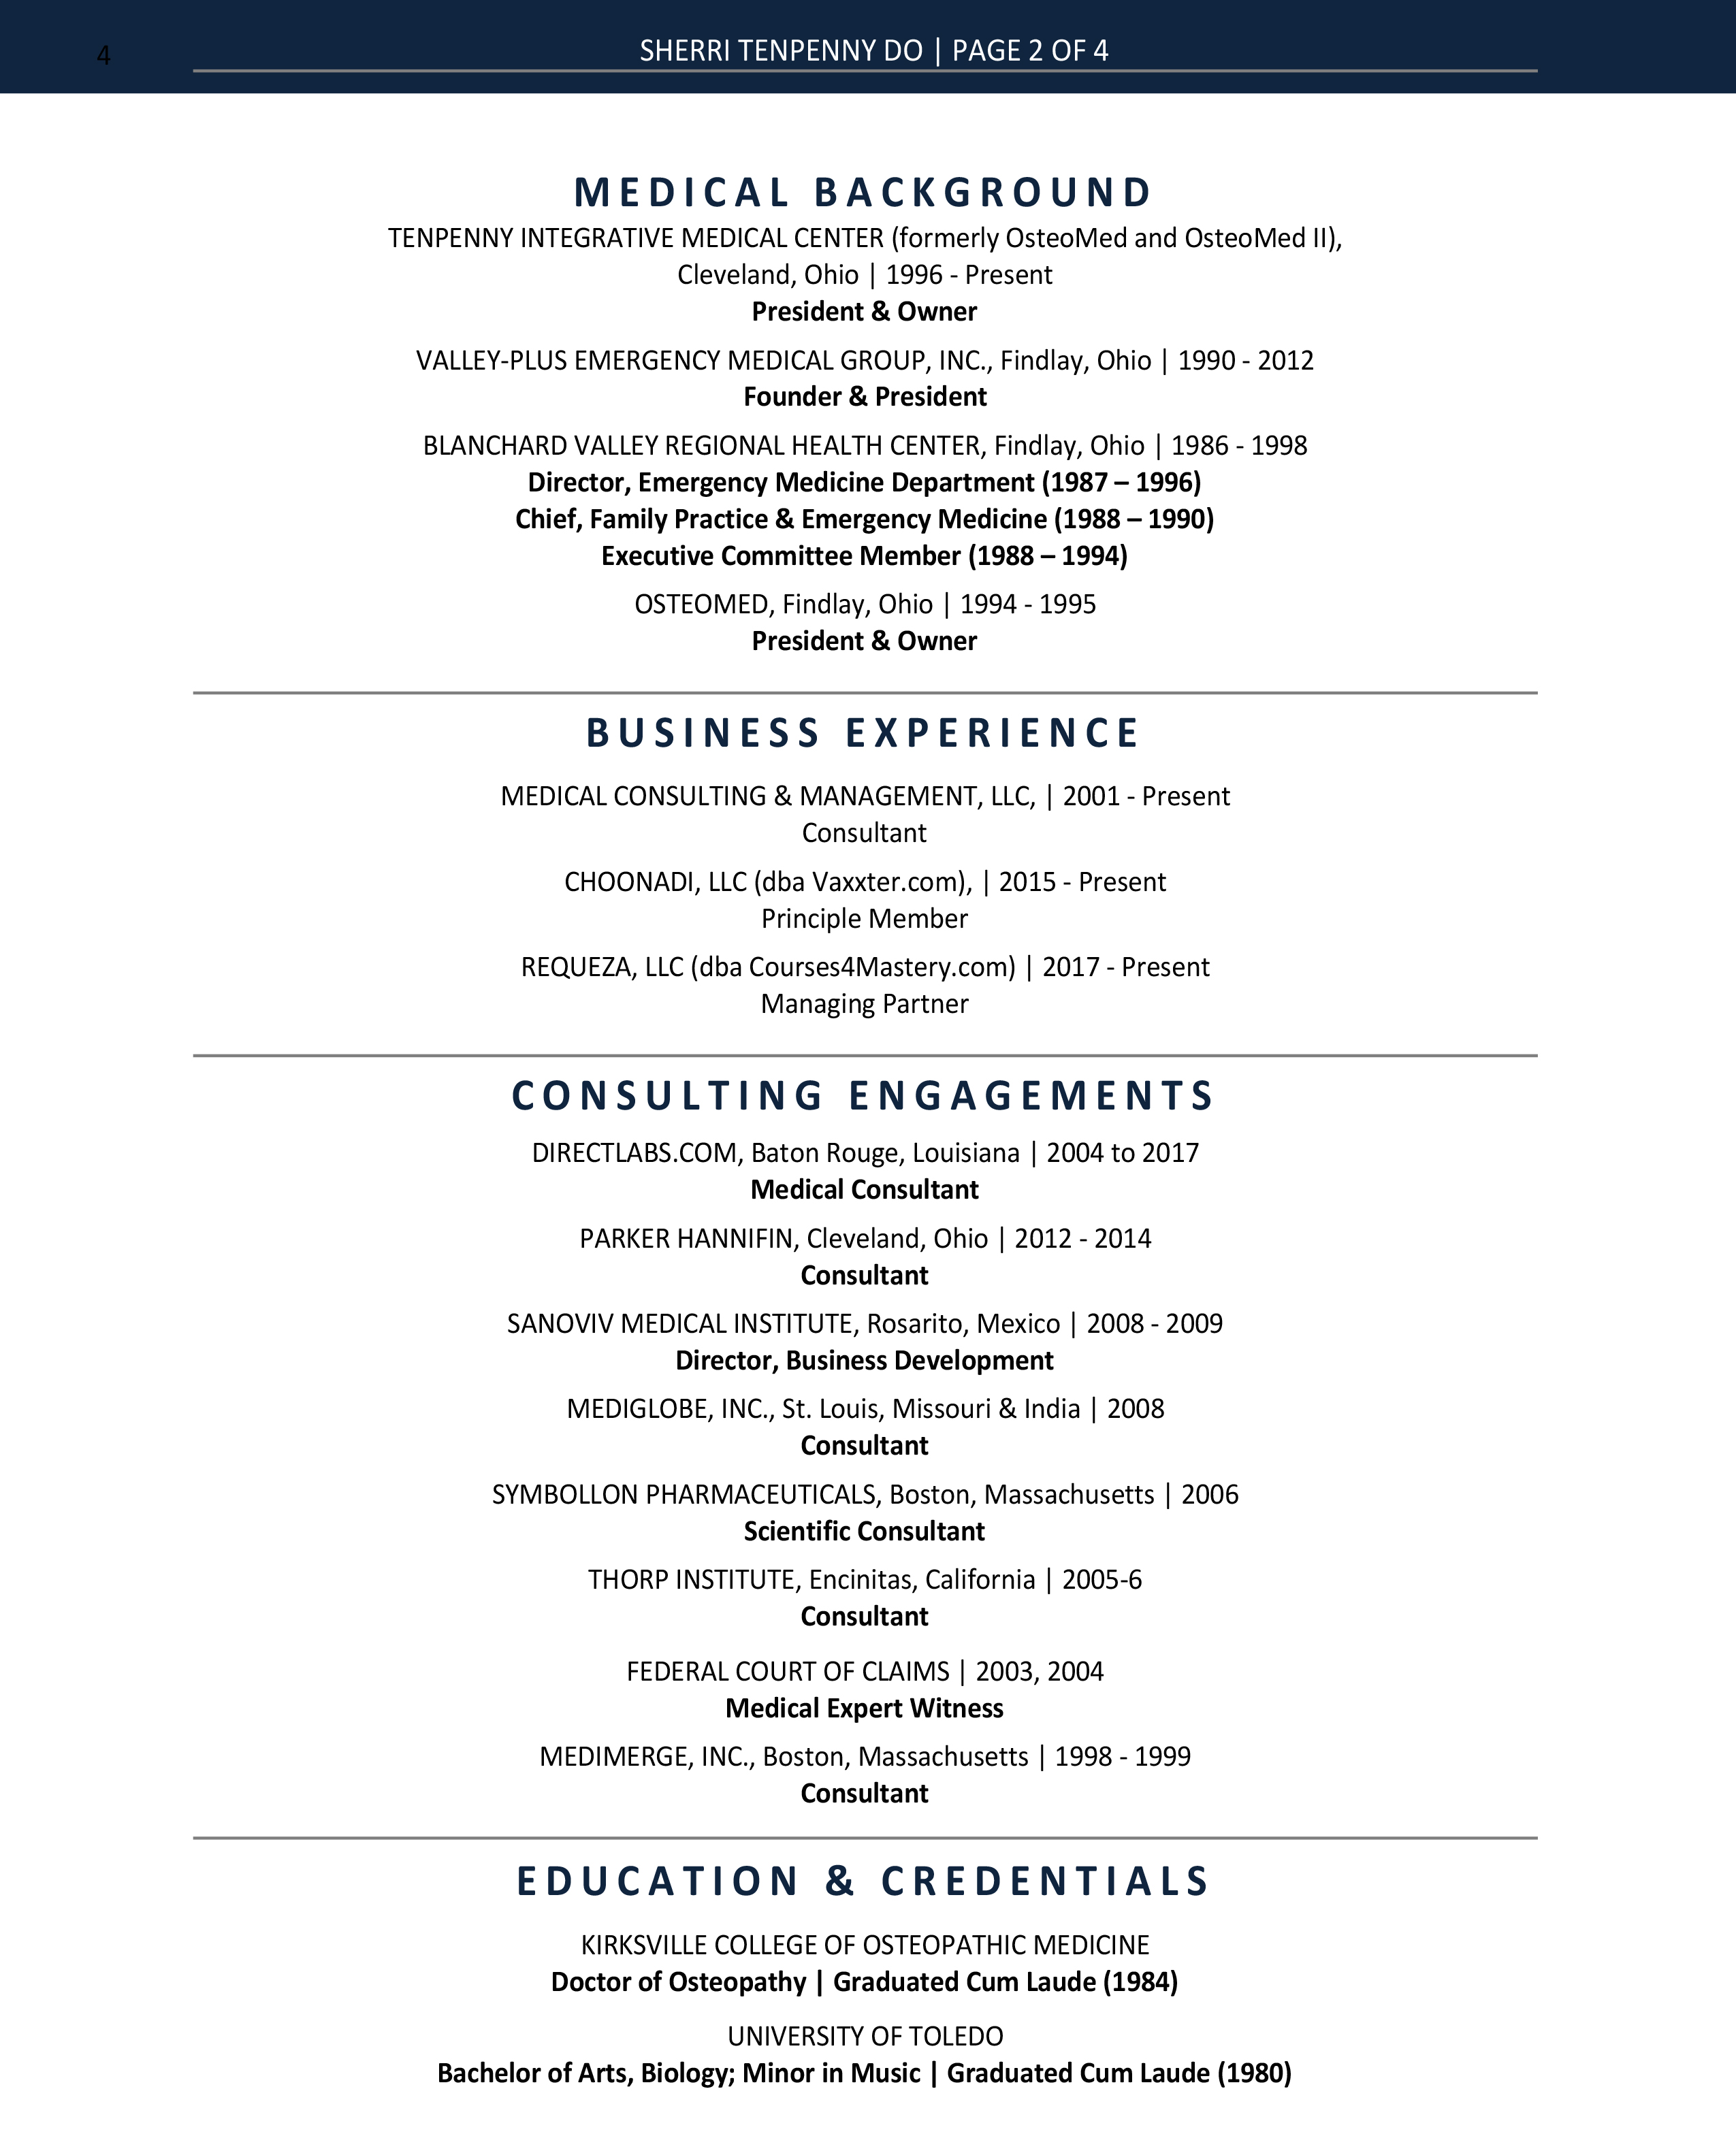 Tenpenny-Resume-4pgs for photoshop-2.jpg